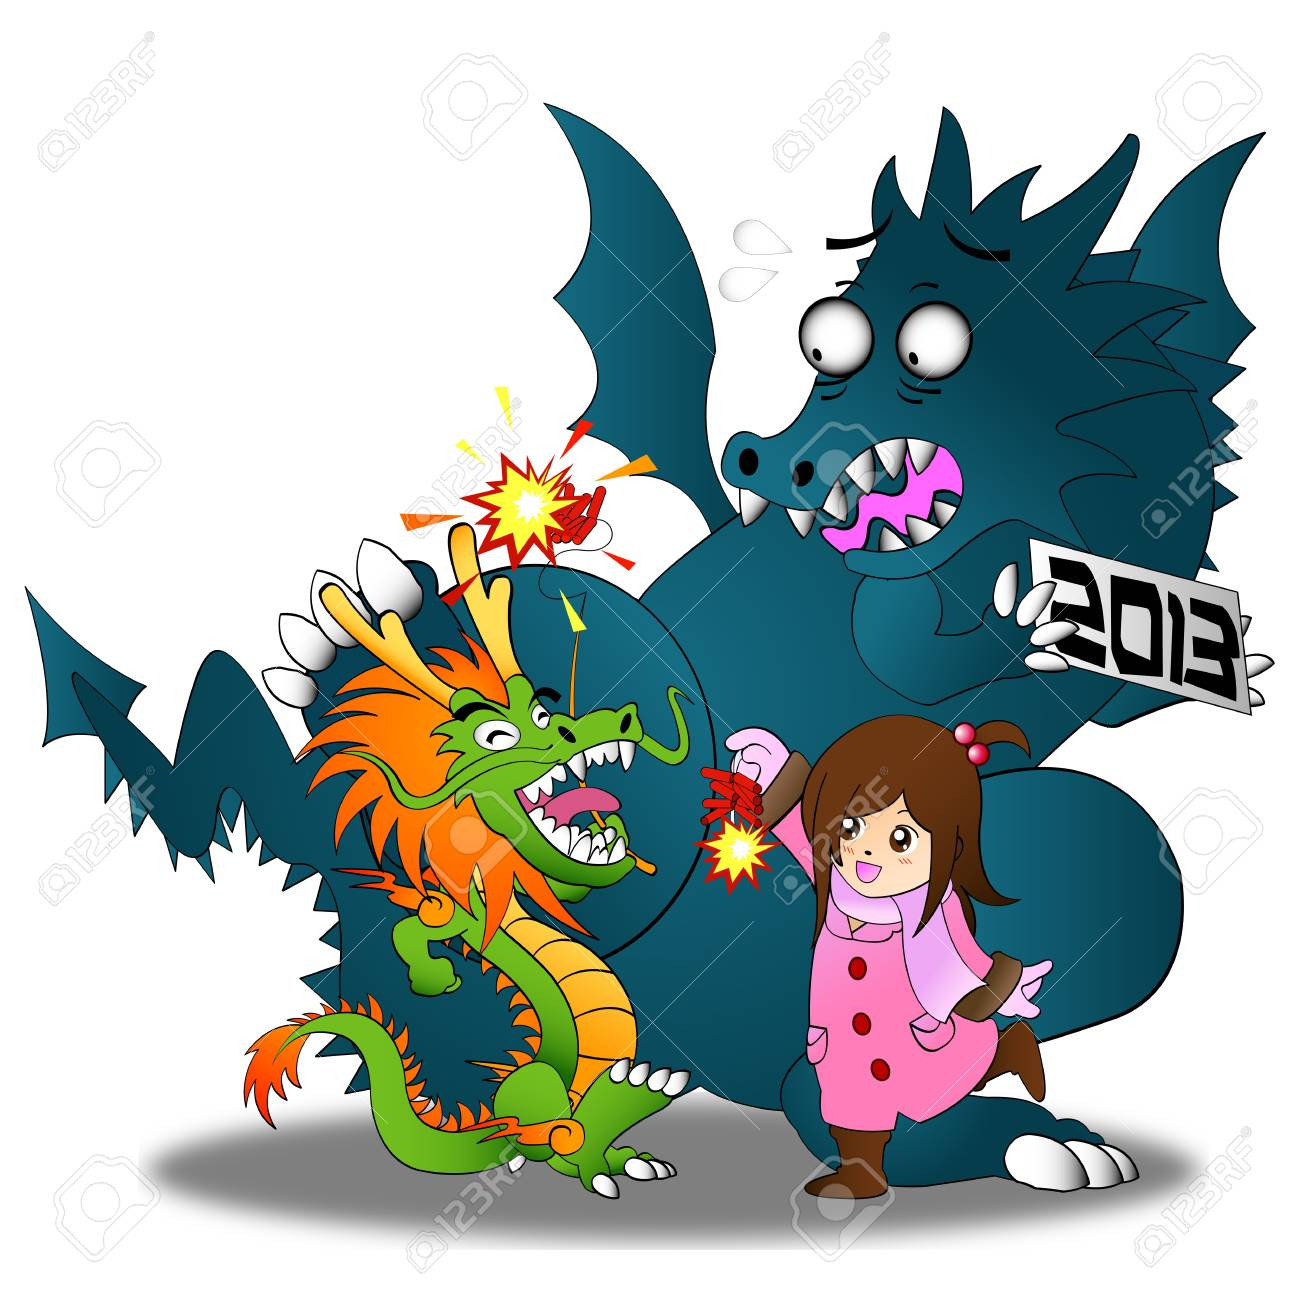 Happy Chinese New Year 2013!! Both Chinese and Western Dragon come to celebrate. Stock Vector - 17203091